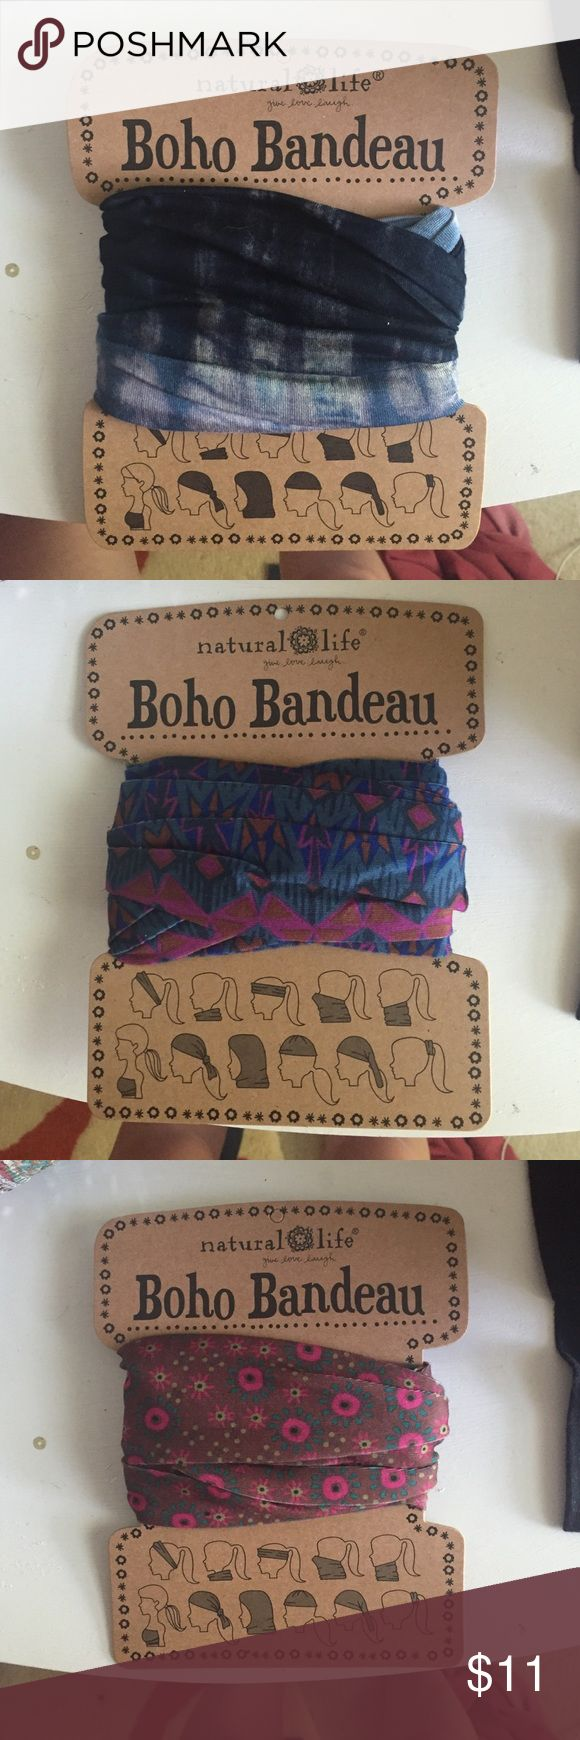 Natural Life 'Boho Bandeaus' Never been worn. Perfect handband Natural Life Accessories Hair Accessories